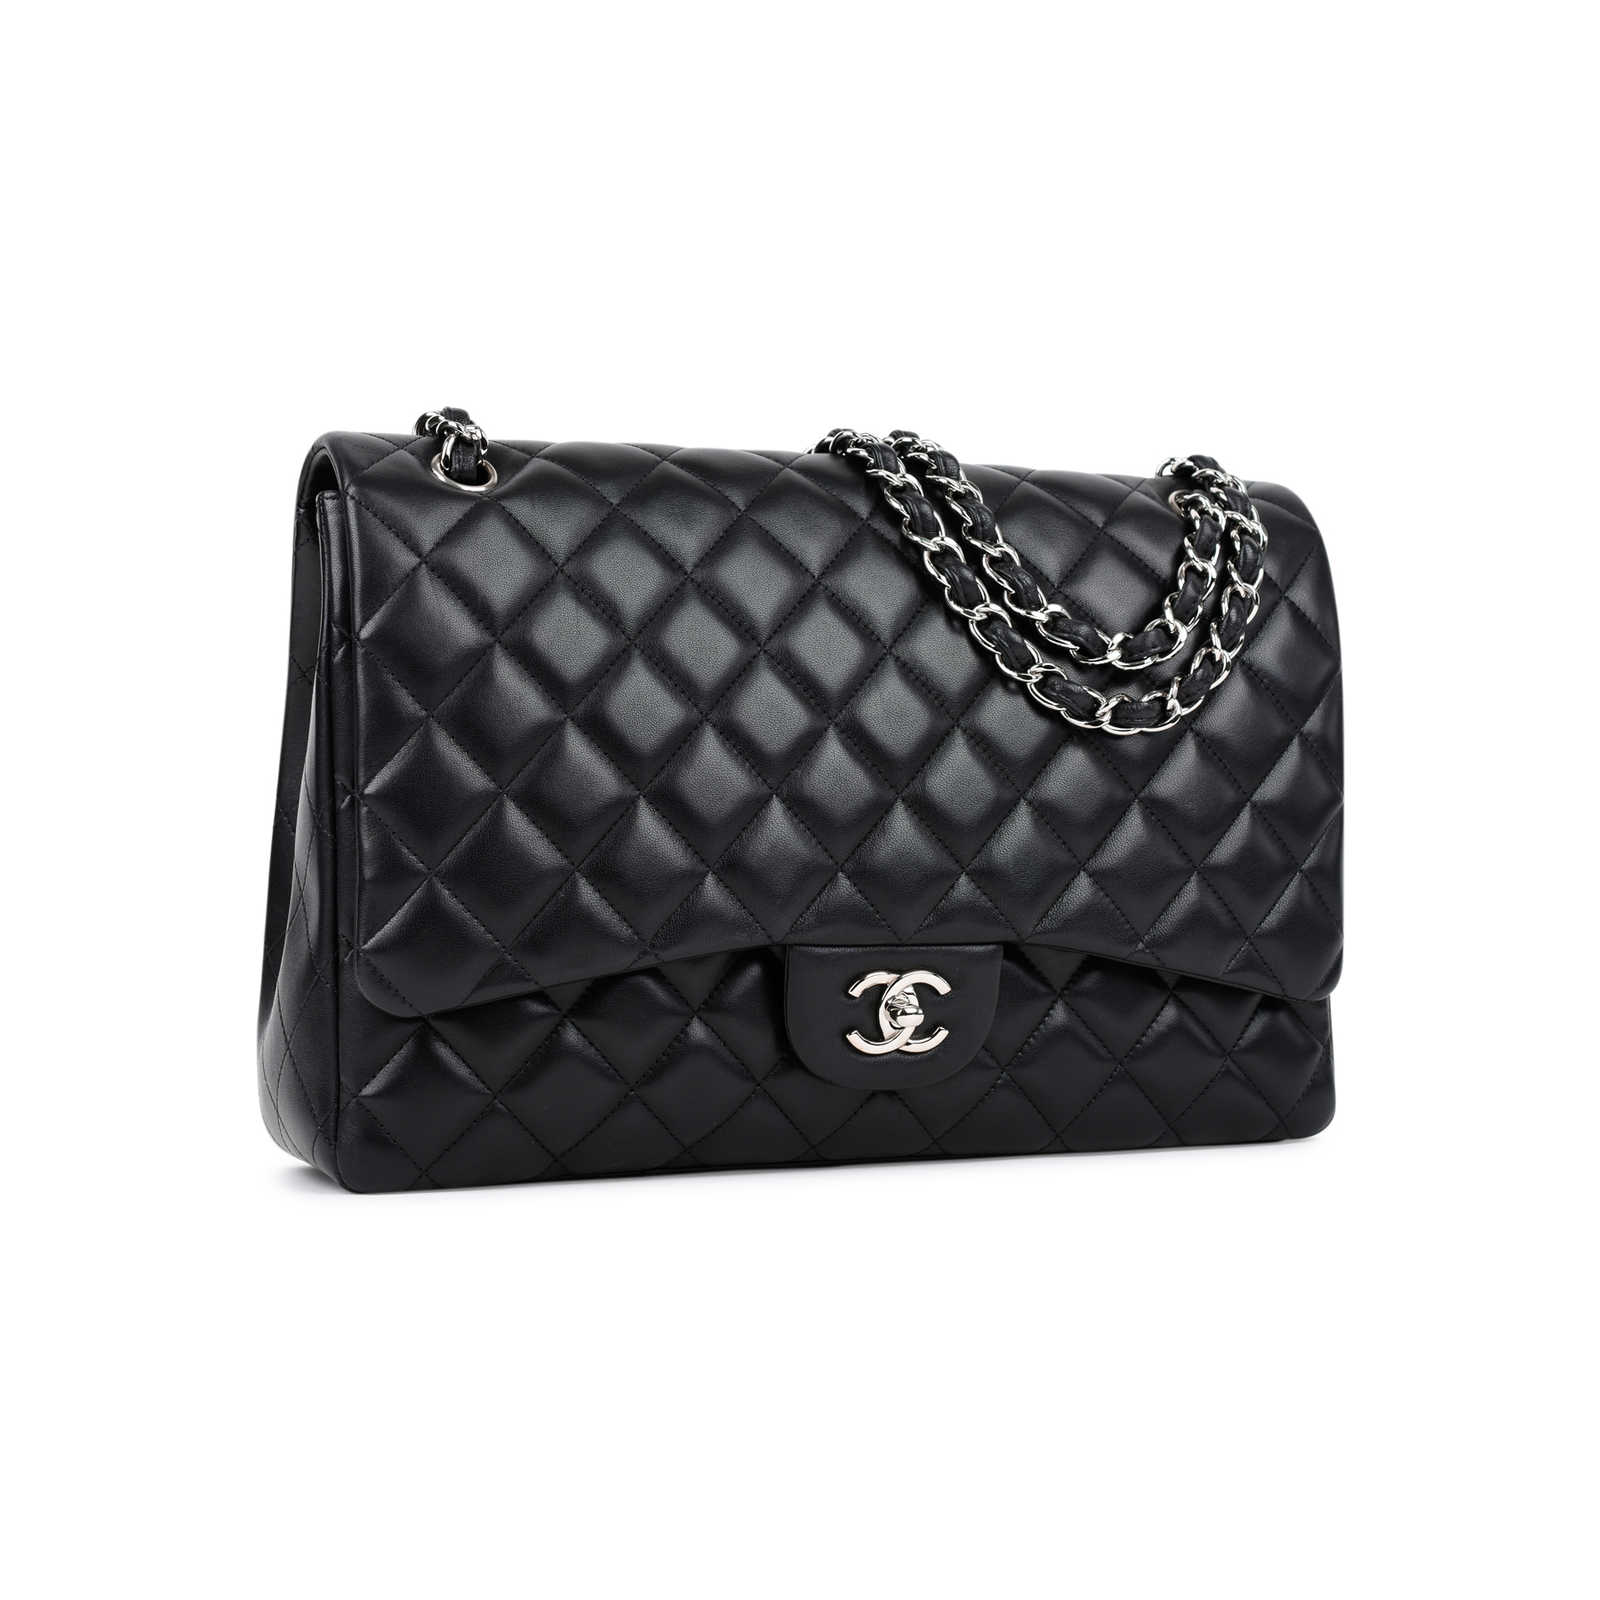 cc8921005709 ... Authentic Second Hand Chanel Classic Maxi Flap Bag (PSS-464-00005) ...